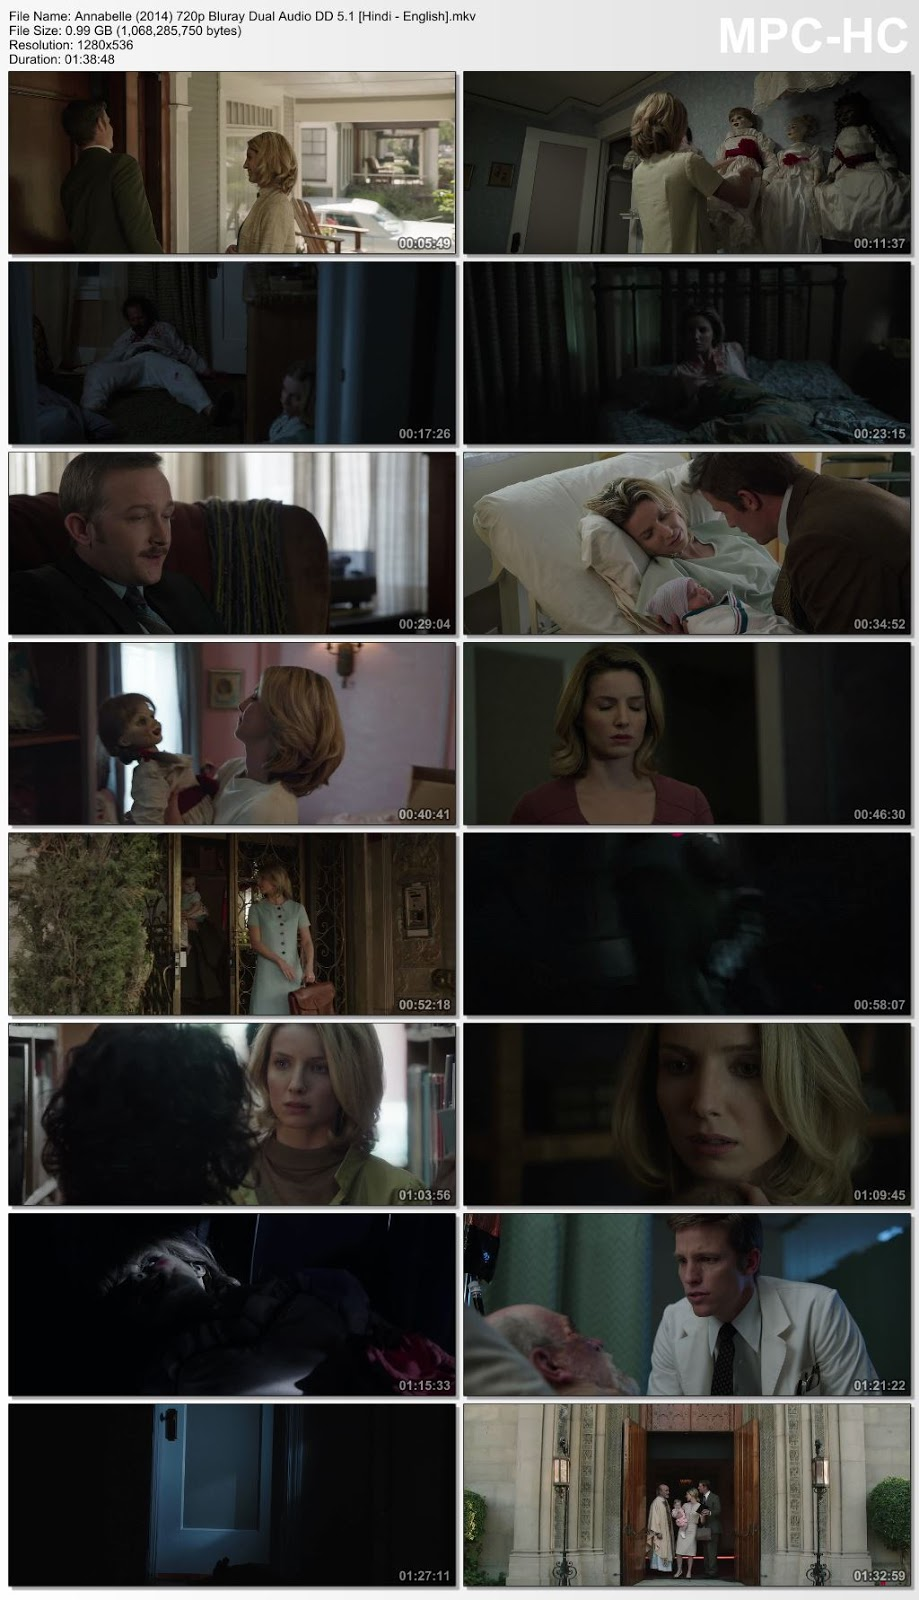 Annabelle (2014) 720p Bluray Dual Audio DD 5.1 [Hindi – English] – 990MB Desirehub